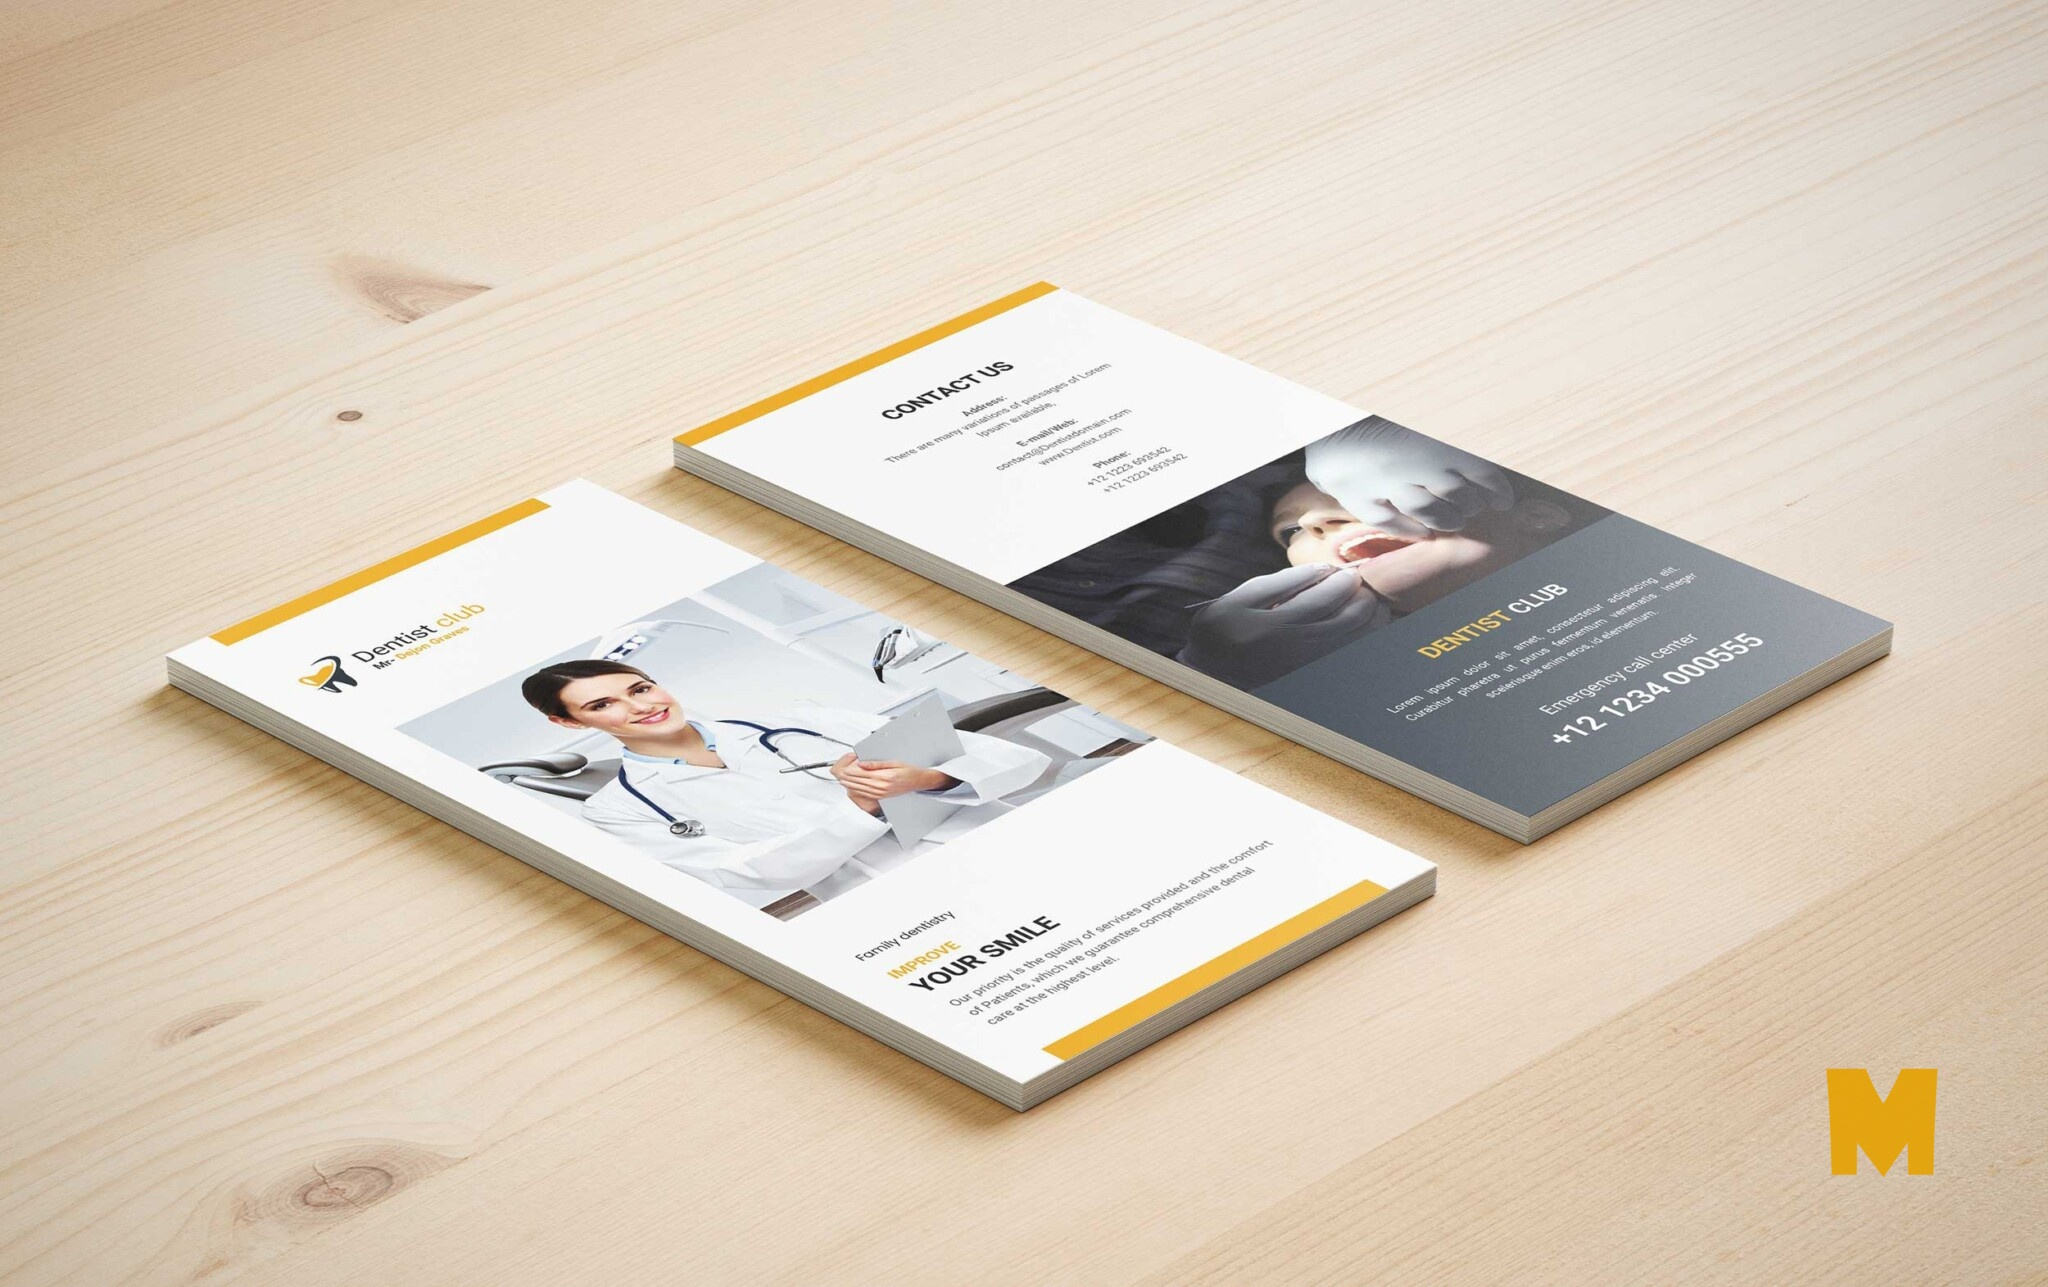 Tri-fold Checkup Psd Premium Dental Brochure Mock-up Template